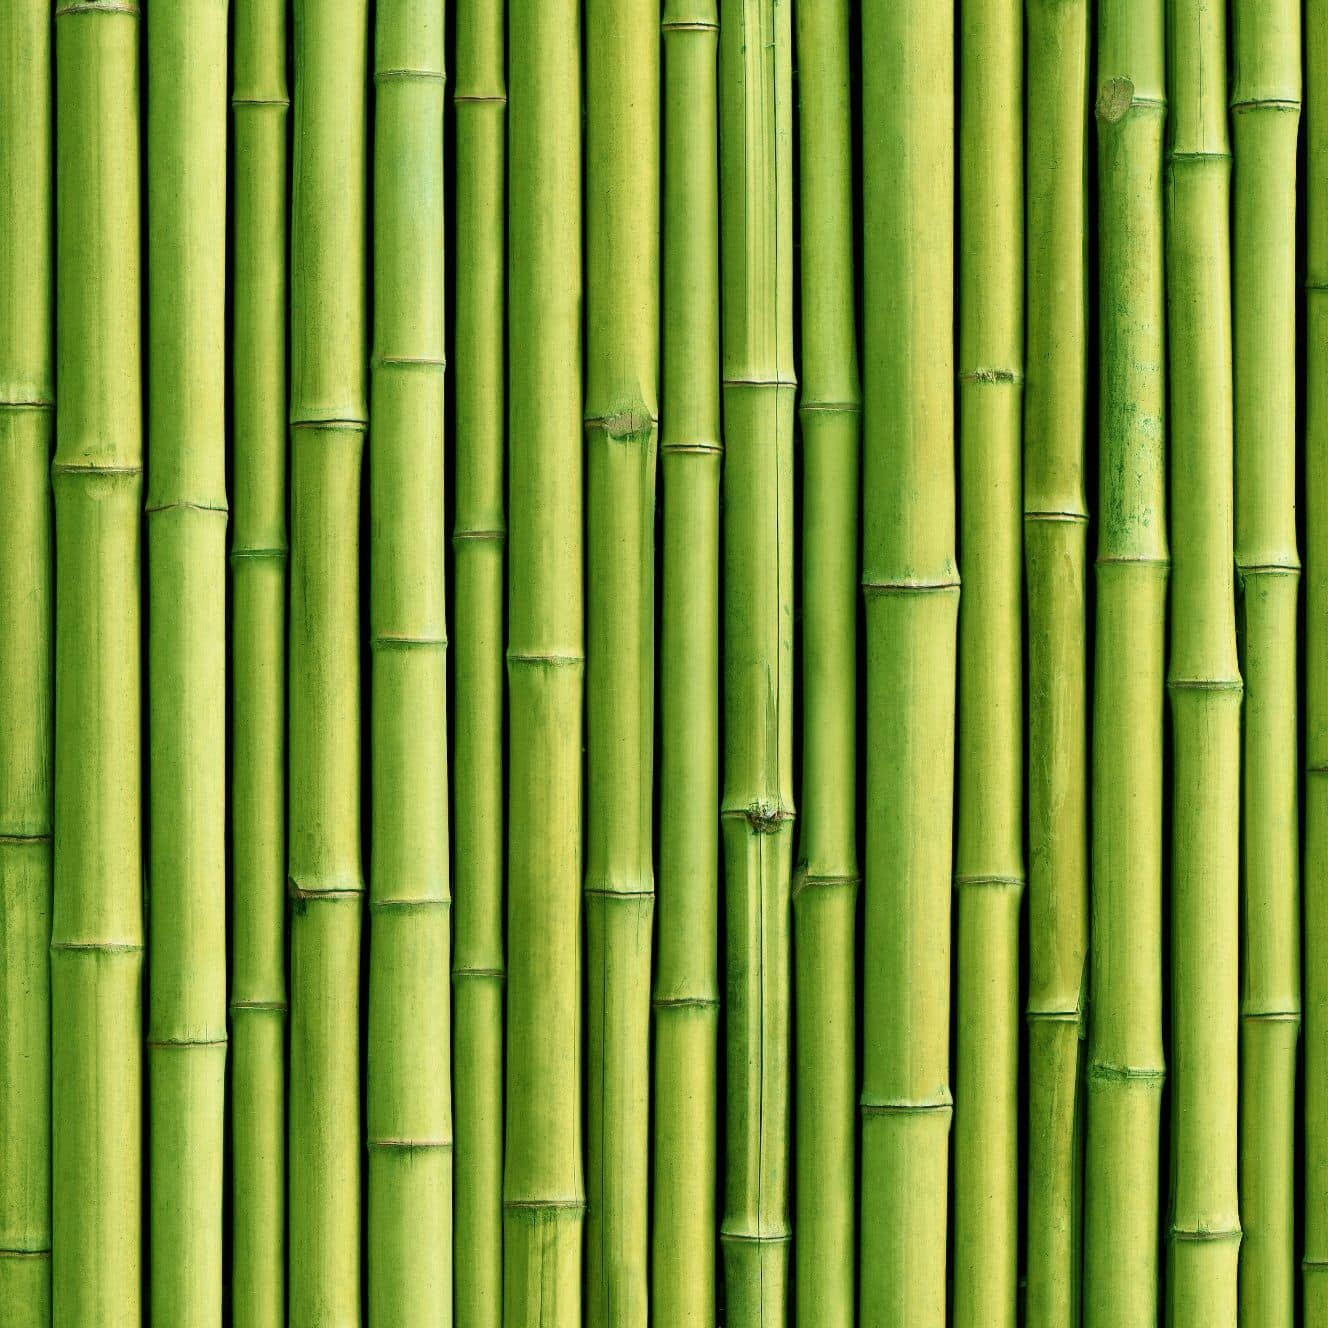 189 1896326 contemporary wallpaper vinyl nature pattern 3d nature bamboo